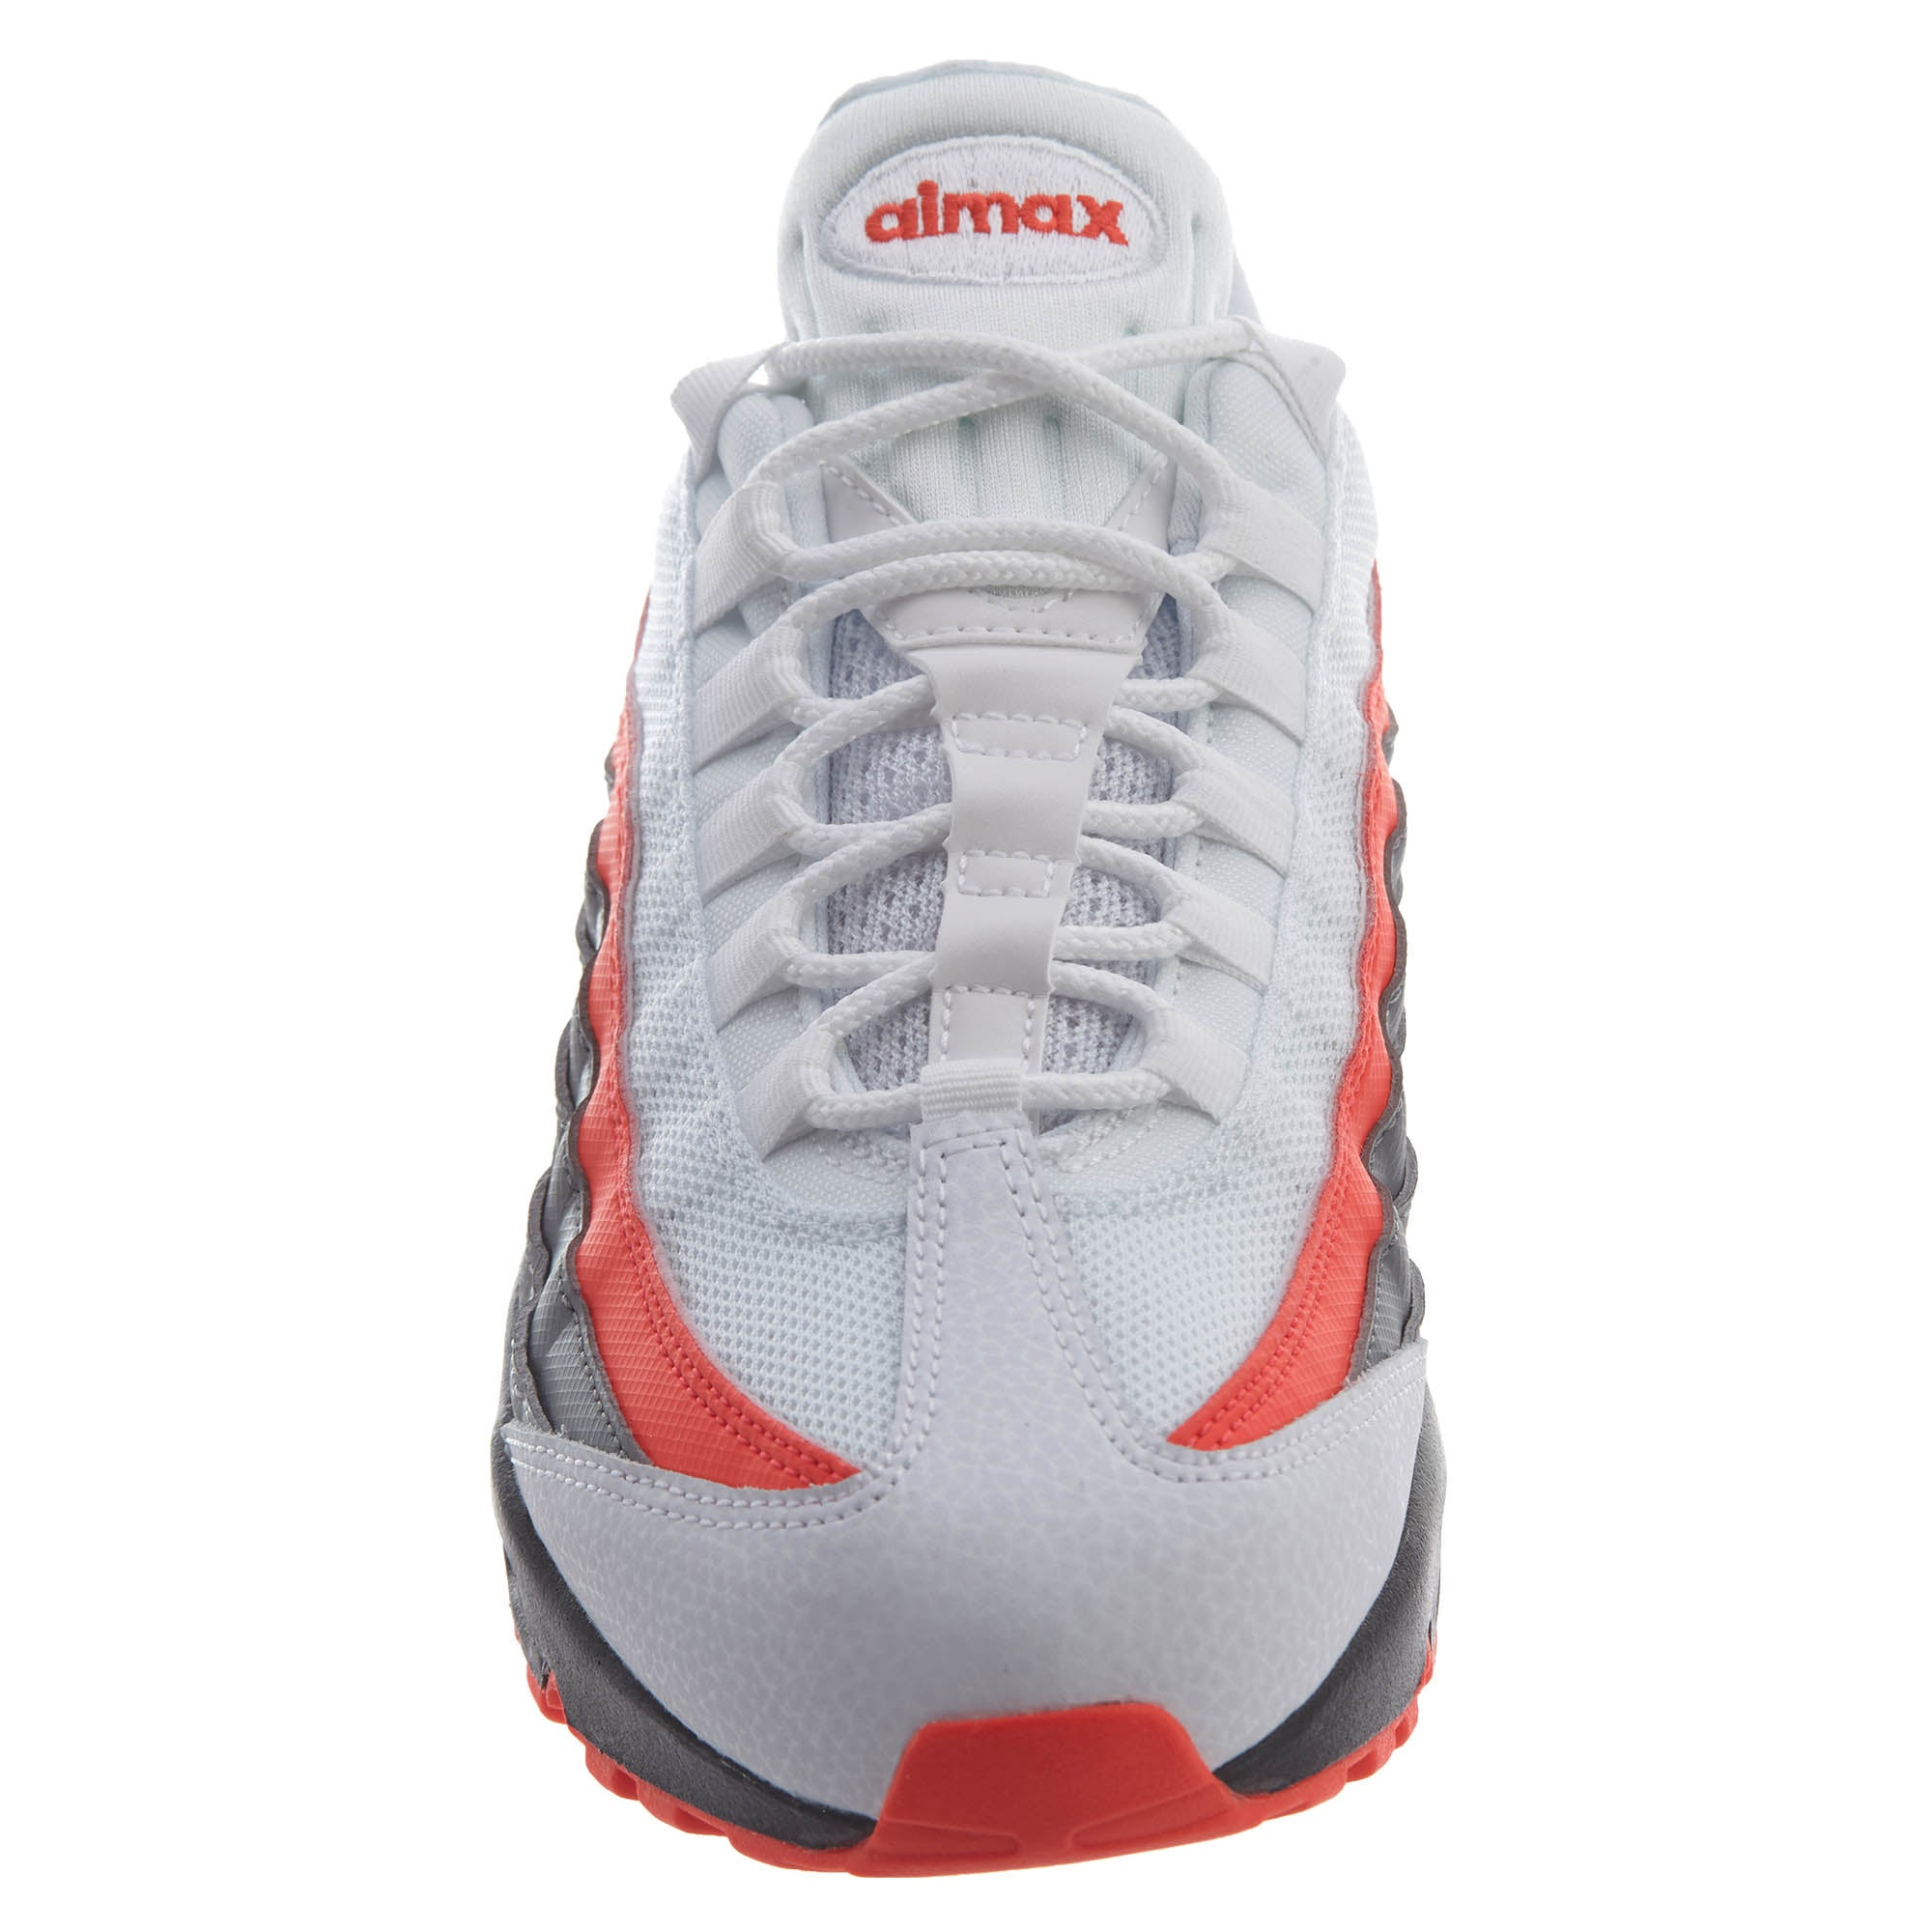 watch 4ce9c 6a52a Nike Air Max 95 Essential Mens Style  749766-112